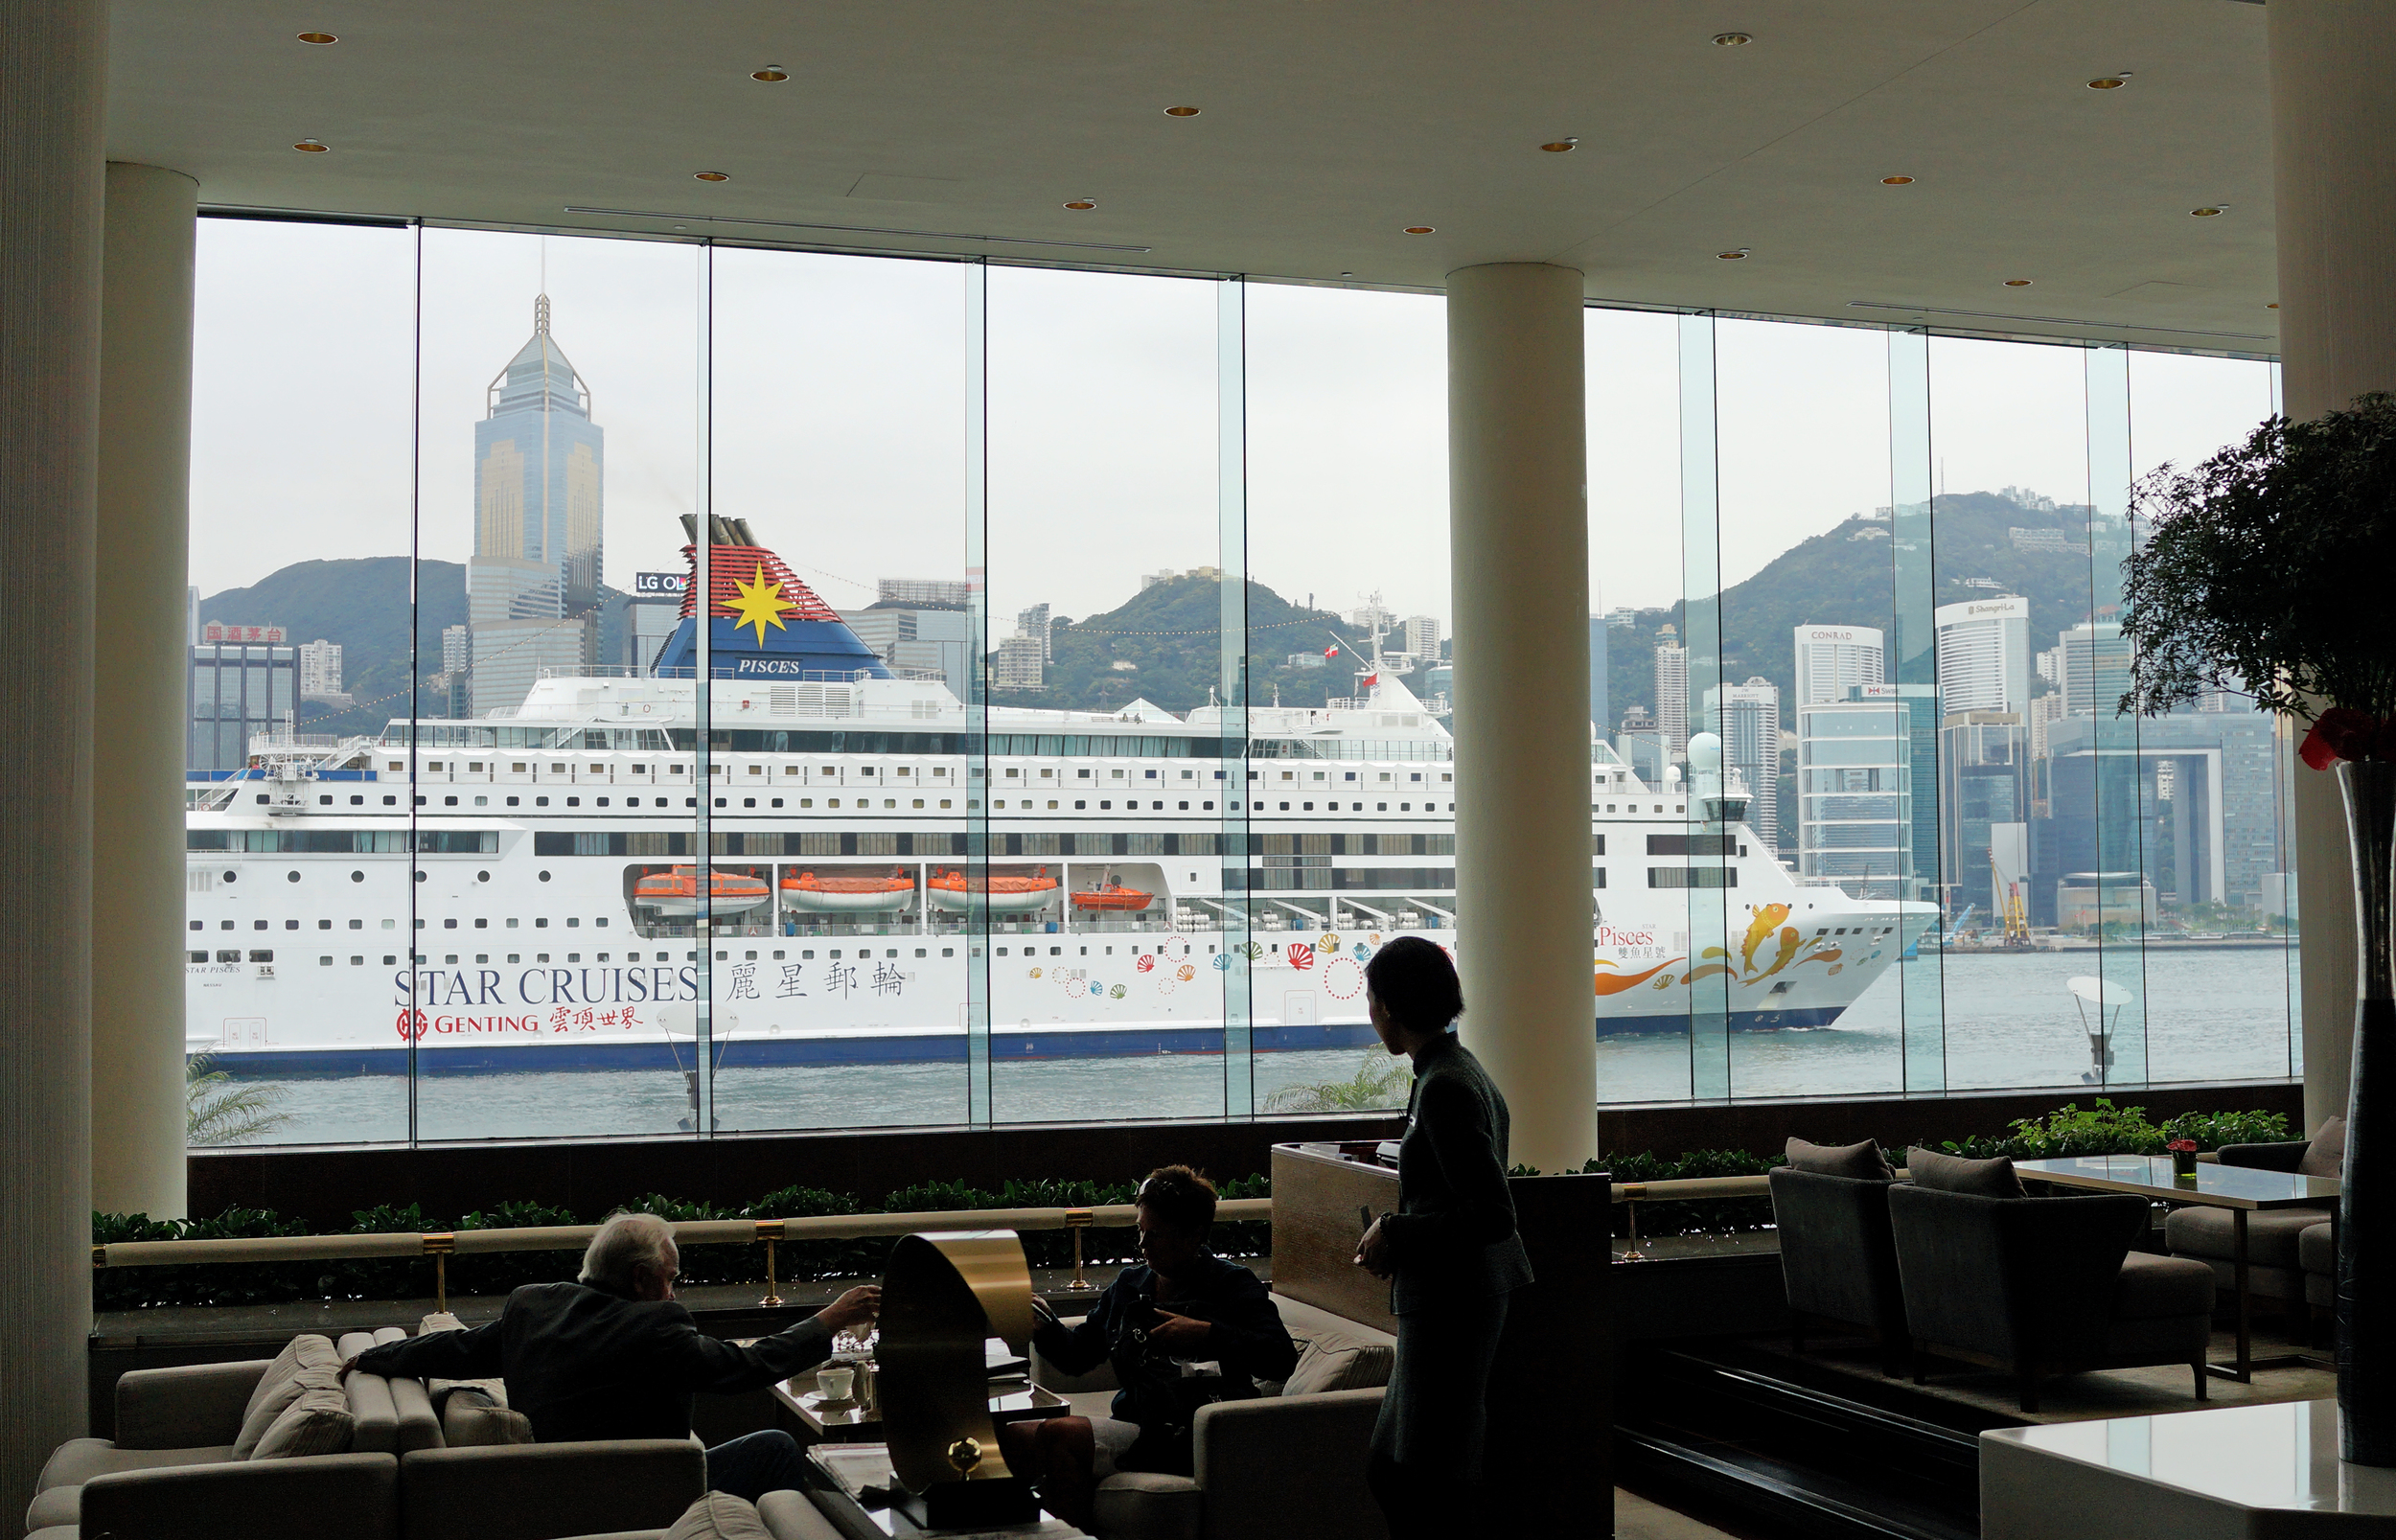 A bit of an iconic image - the Star Pisces gambling ship sailing past the Intercontinental Hotel -